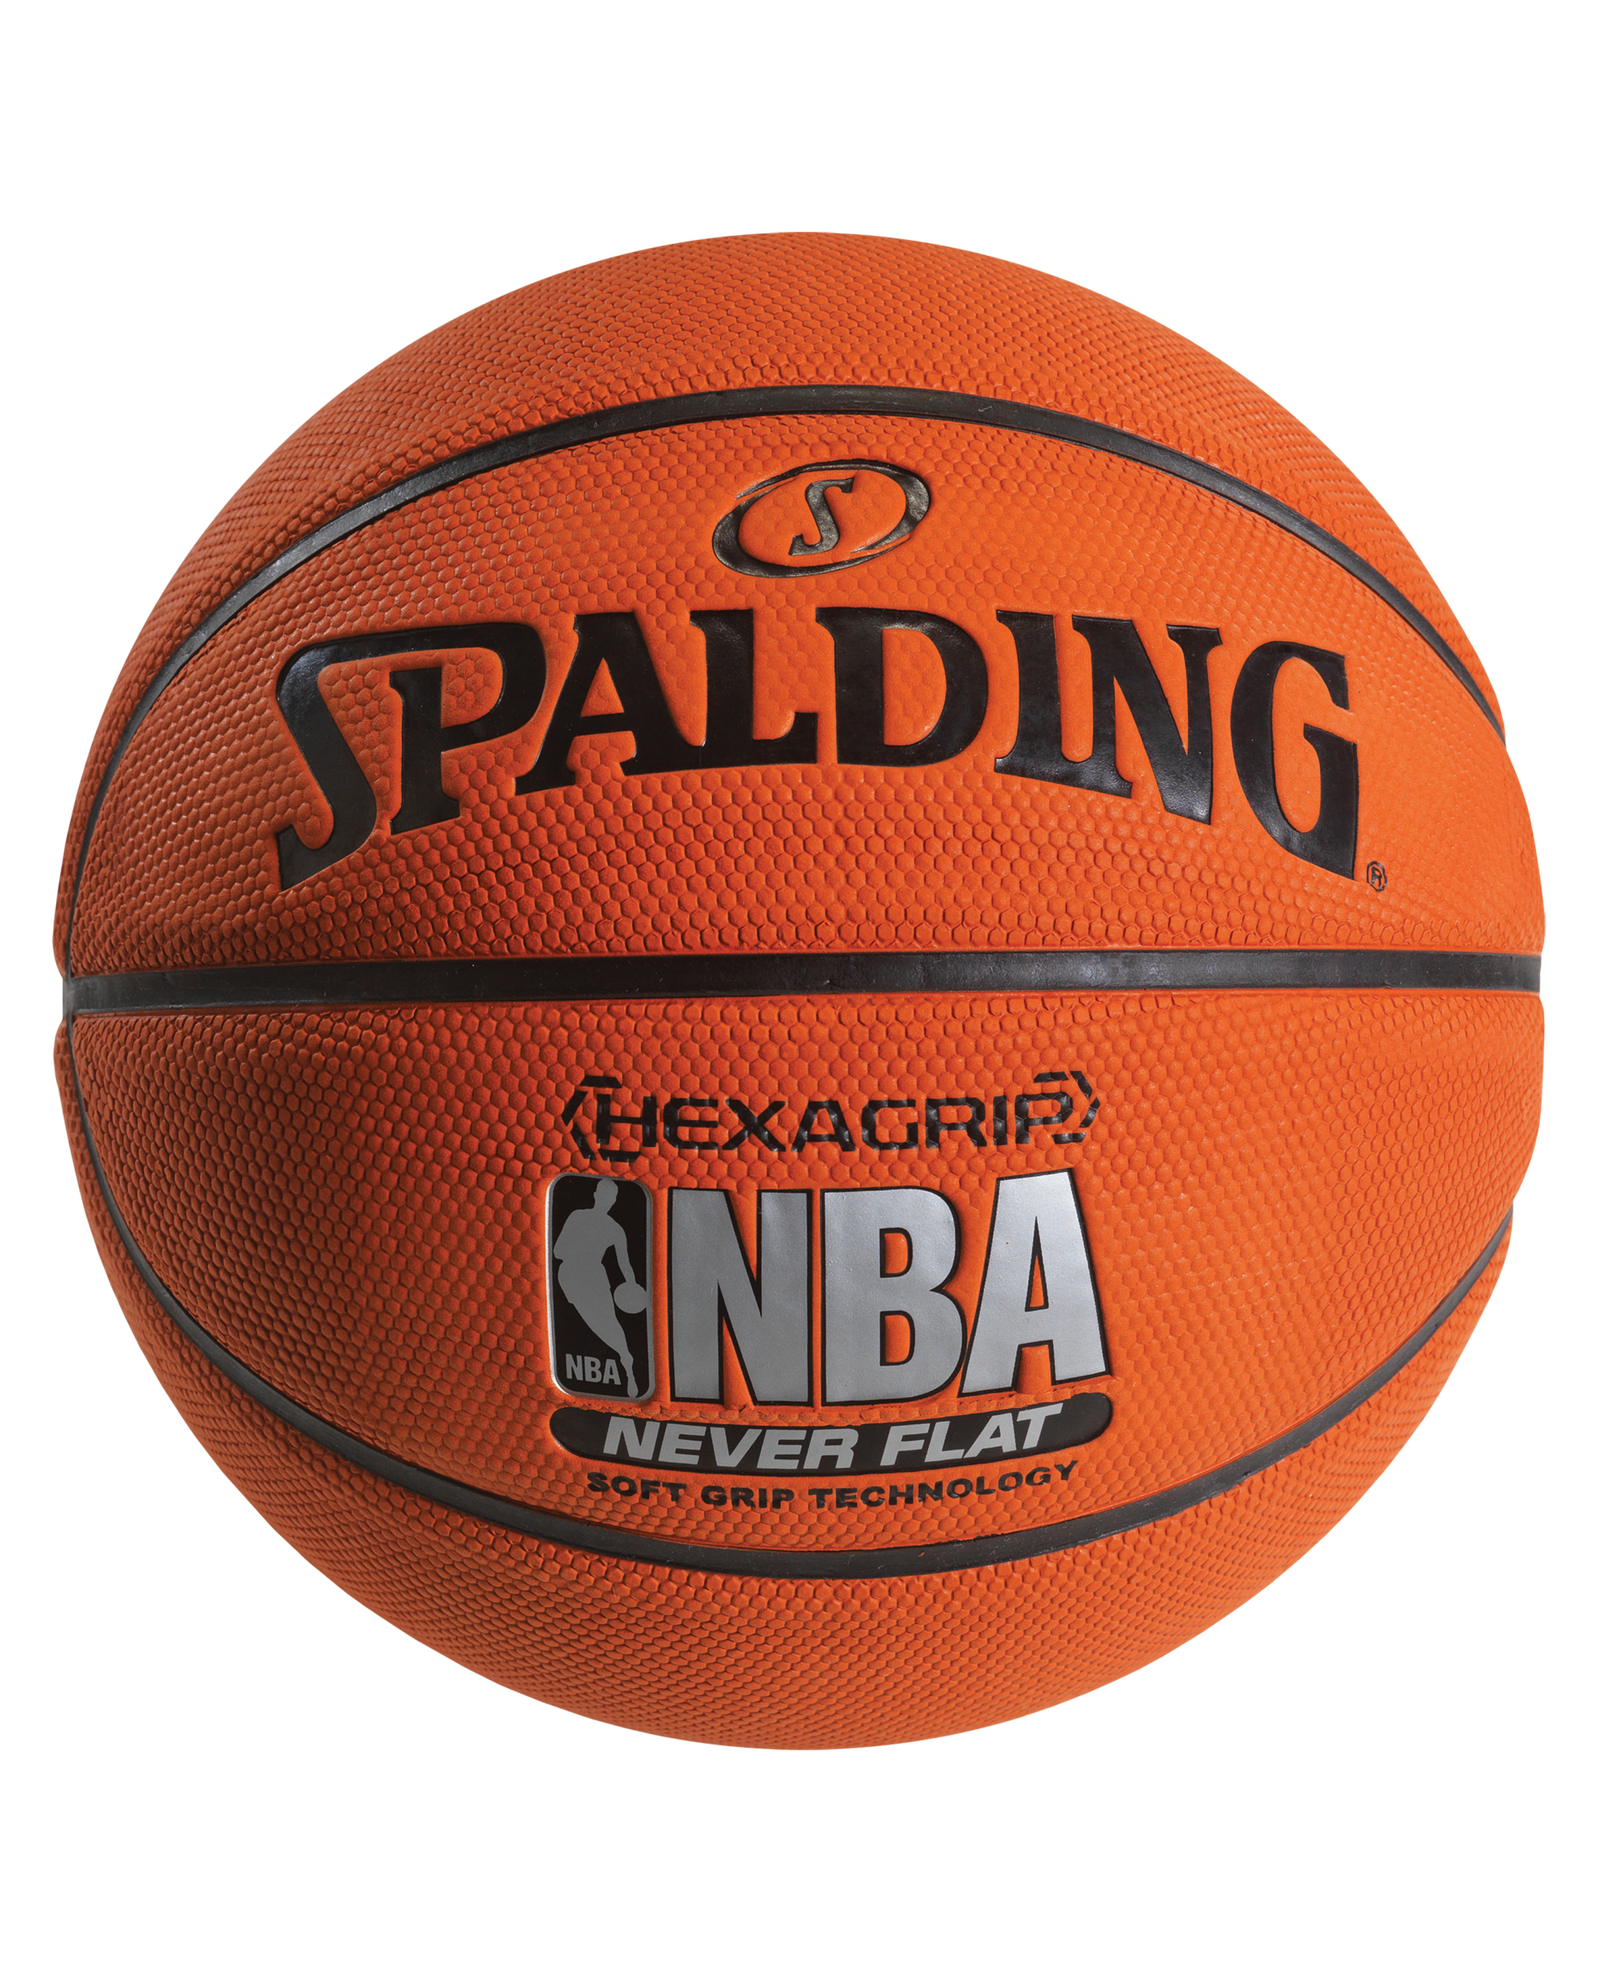 NEVERFLAT® HEXAGRIP BASKETBALL - Spalding US